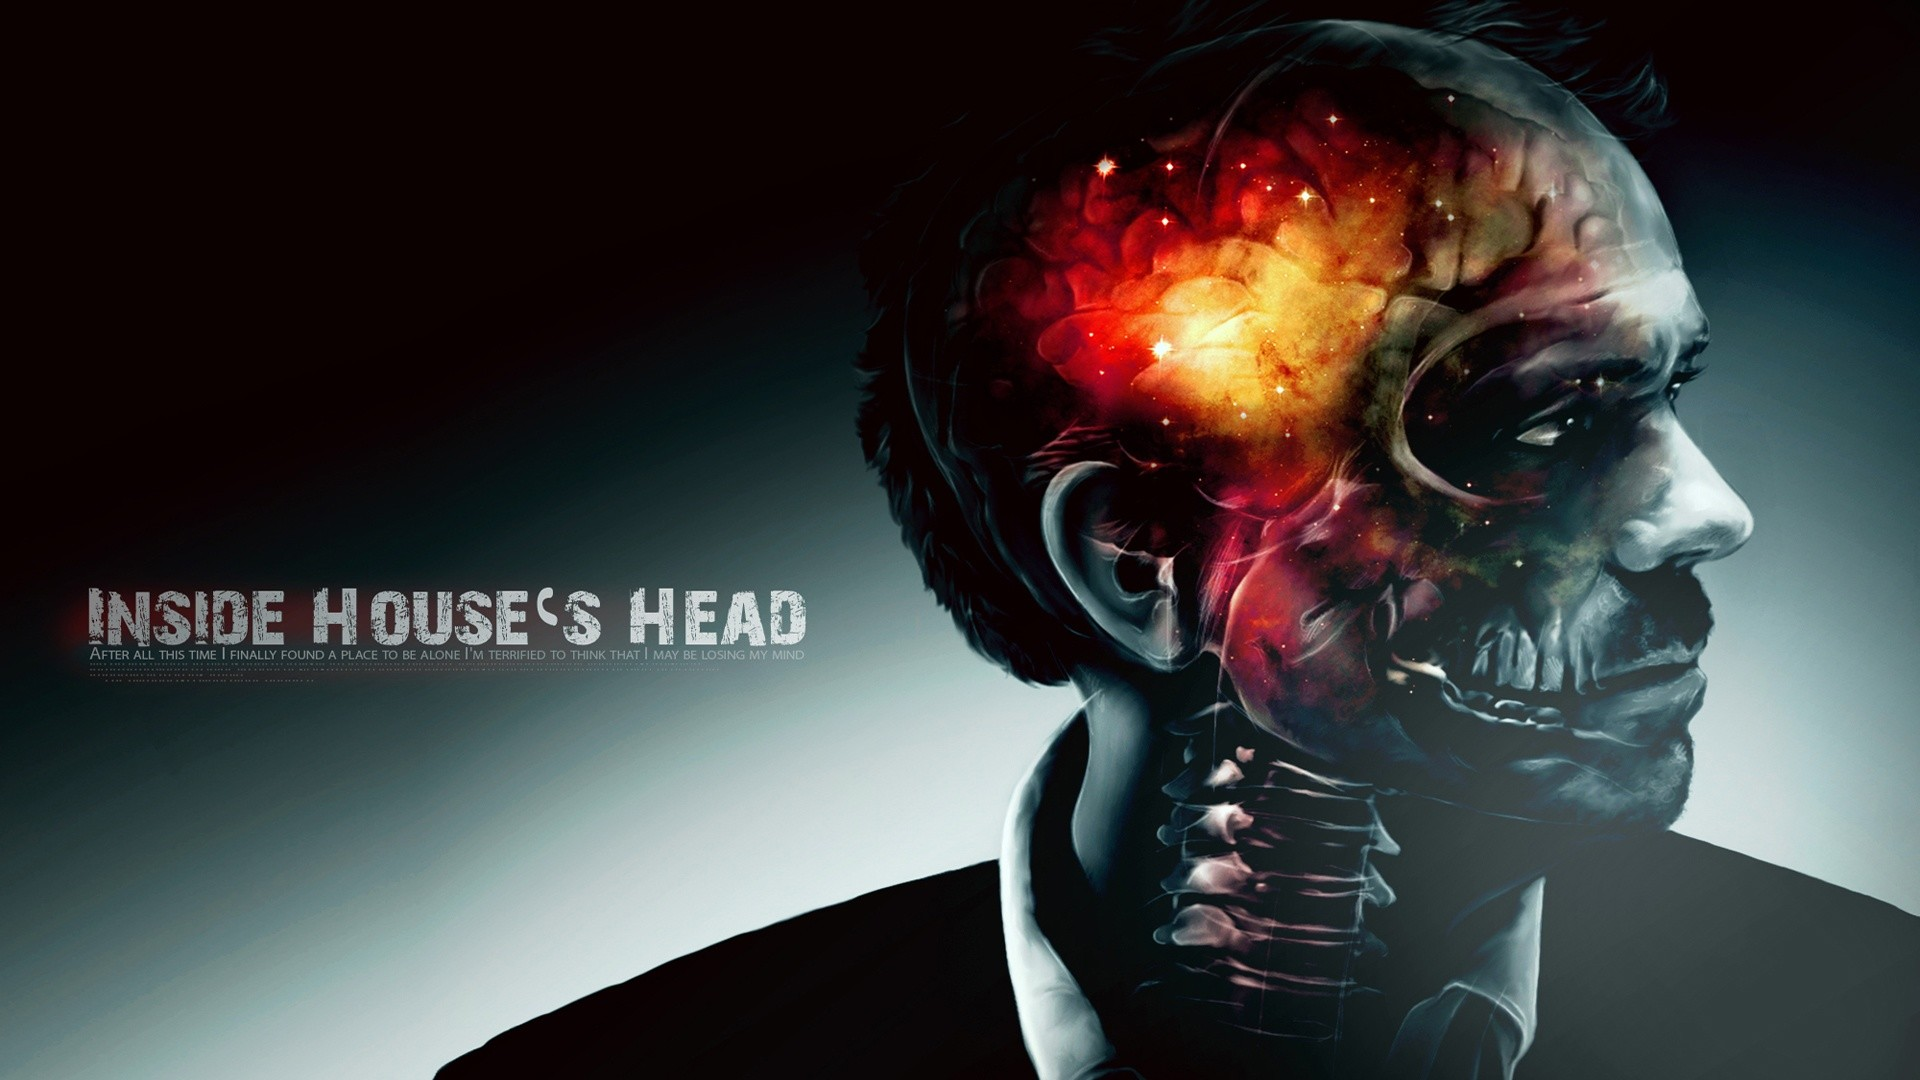 House MD, Movies, Films, Series, Comics Full HD wallpaper download to PC,  Mobile or Table PC. You can also set as Facebook Cover